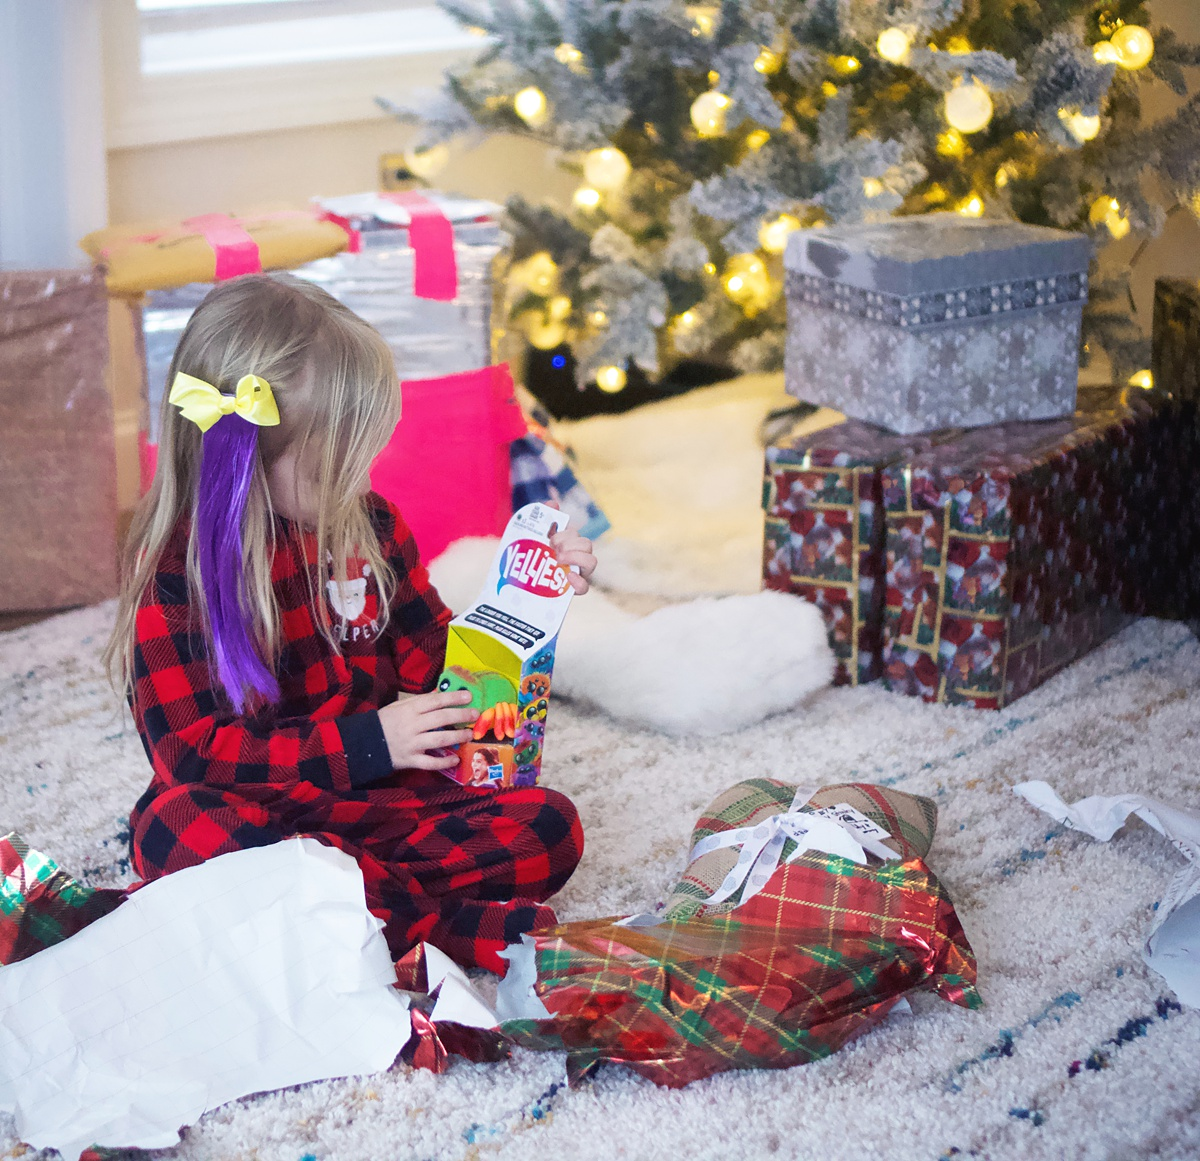 Christmas Gift Ideas For 5 Year Old: Generic Christmas Gifts Ideas For Kids 2-5 Years Old